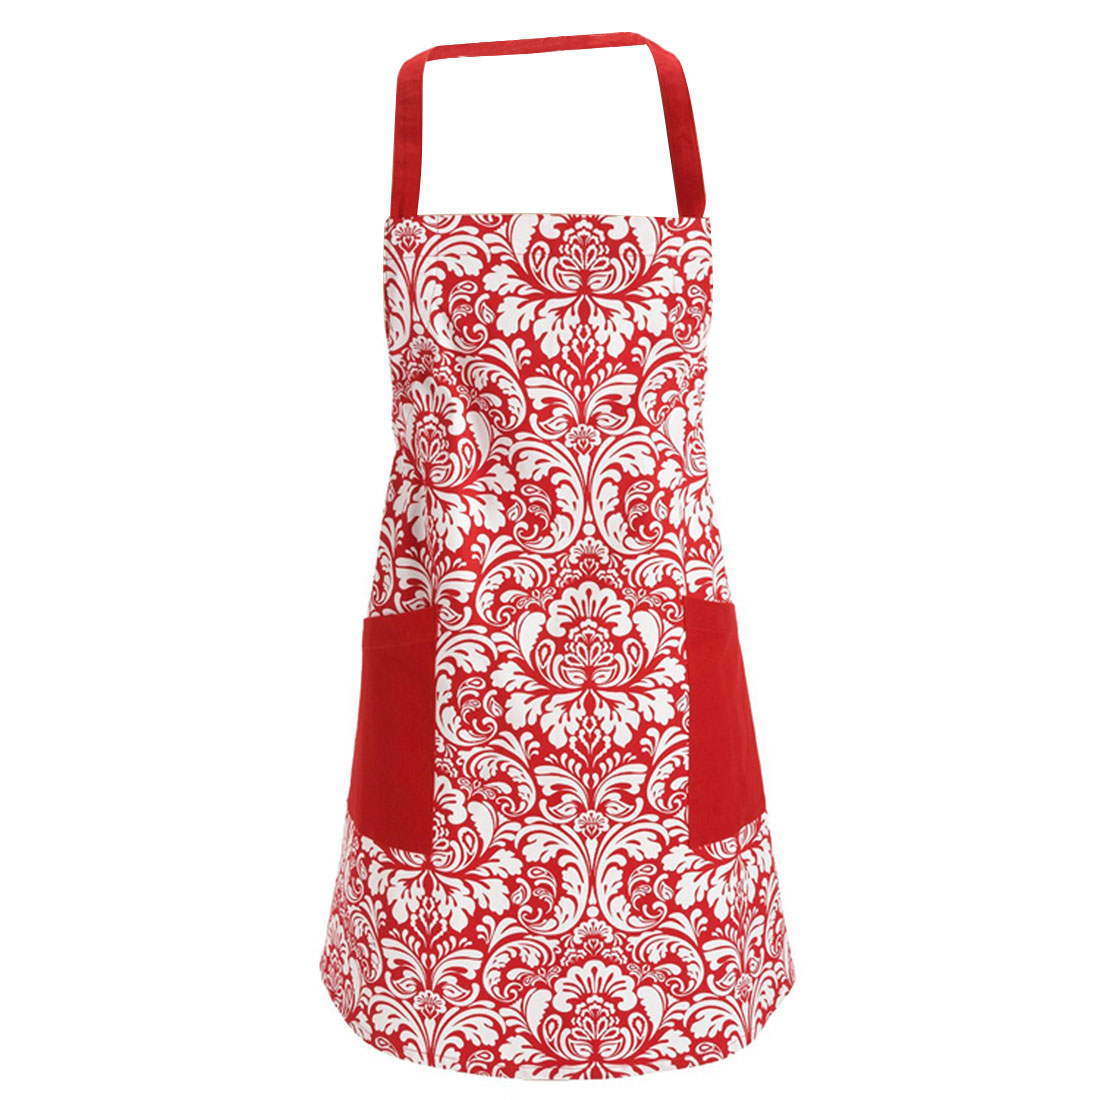 Women Flower Prints Kitchen Restaurant Bib Cooking Pocket Apron Dress Red